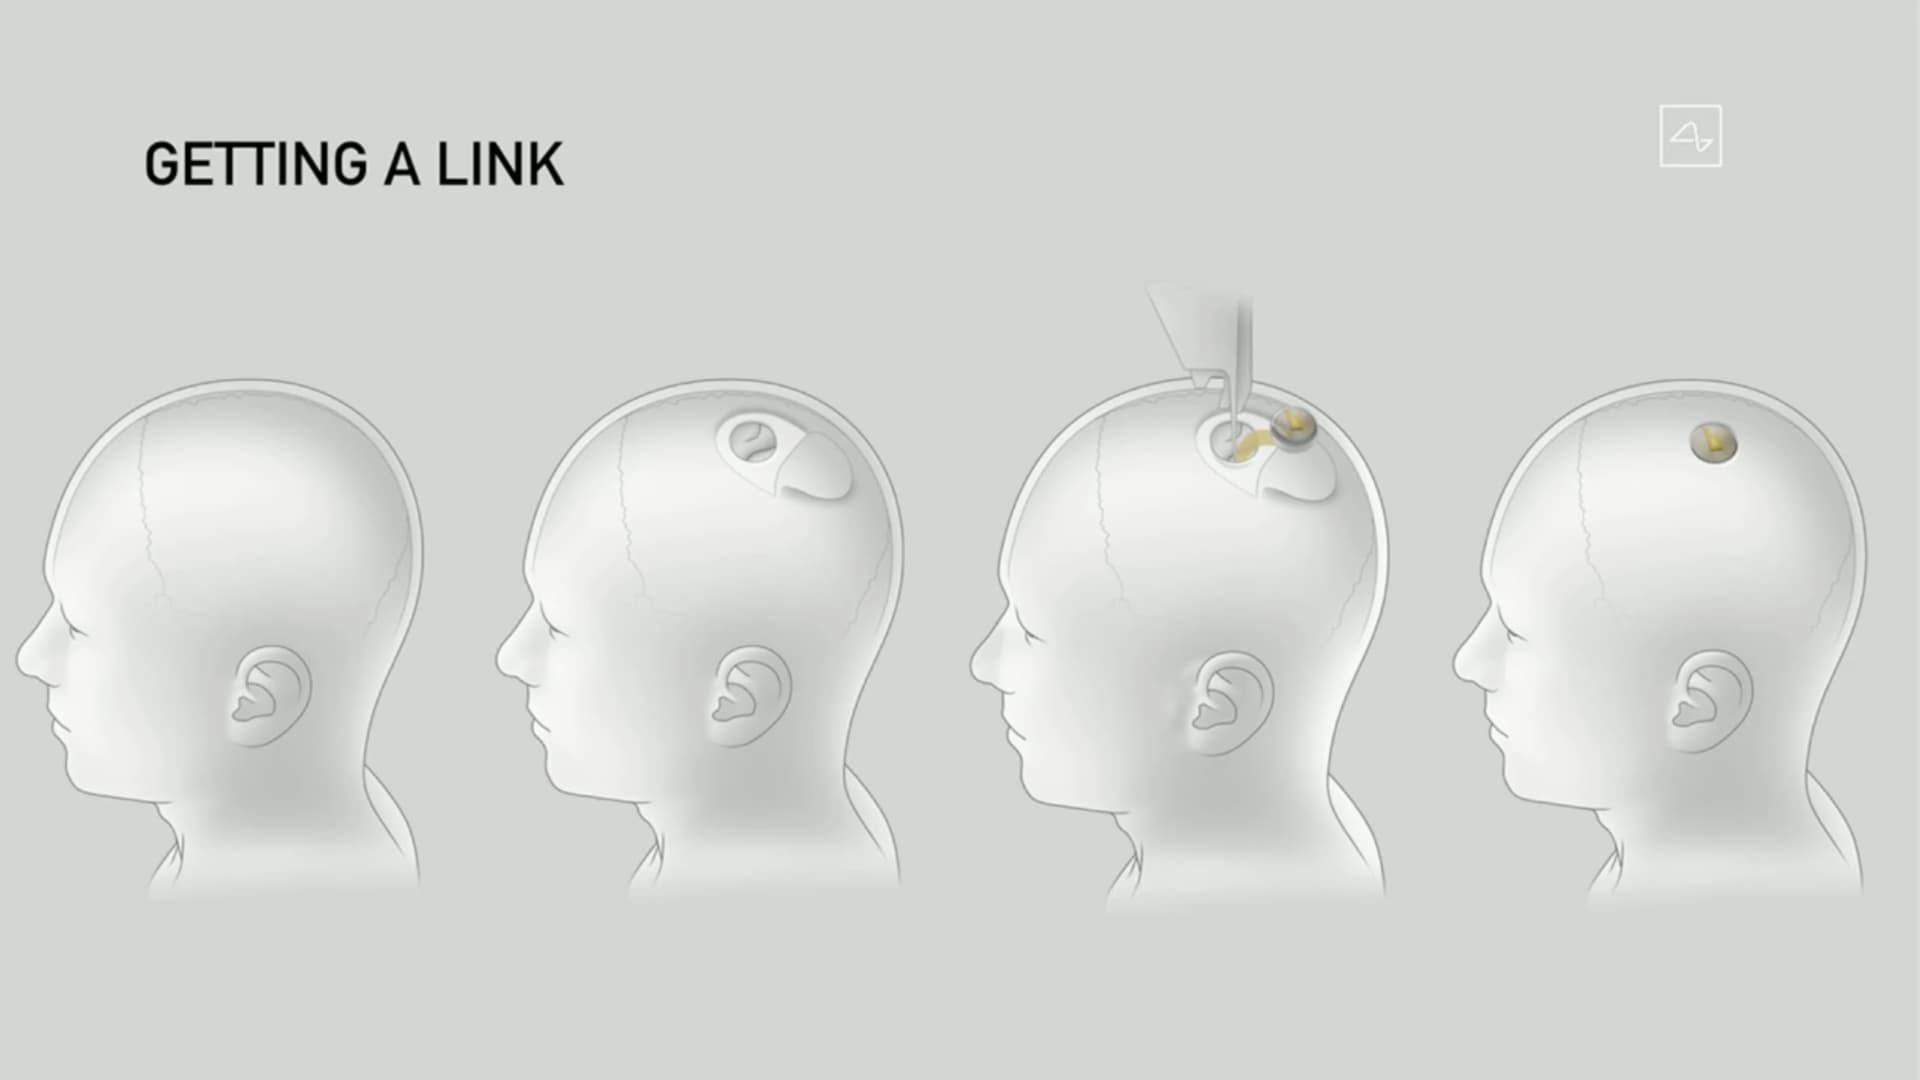 Musk said the Neuralink device will be in